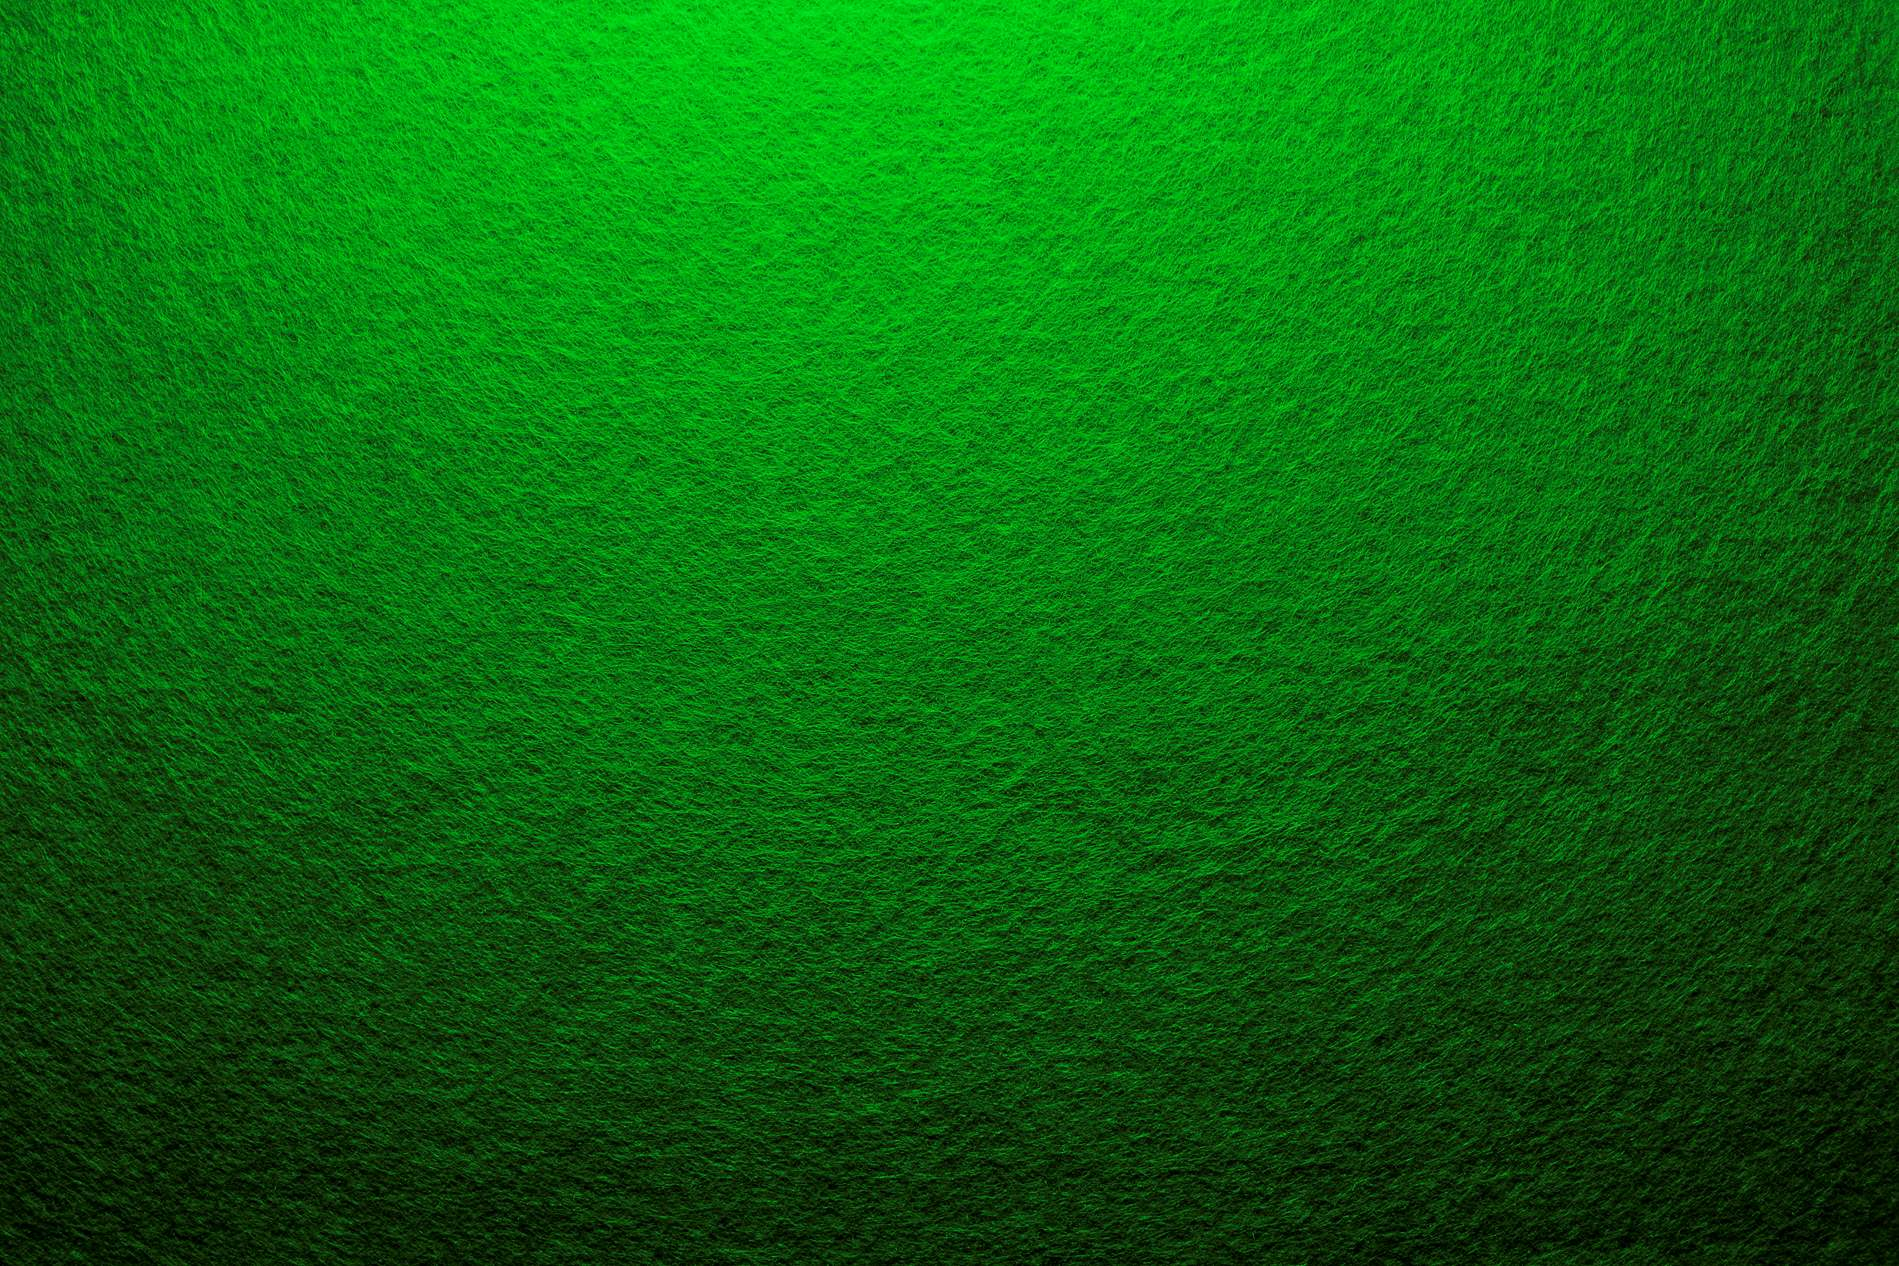 Green Soft Fabric Texture Background